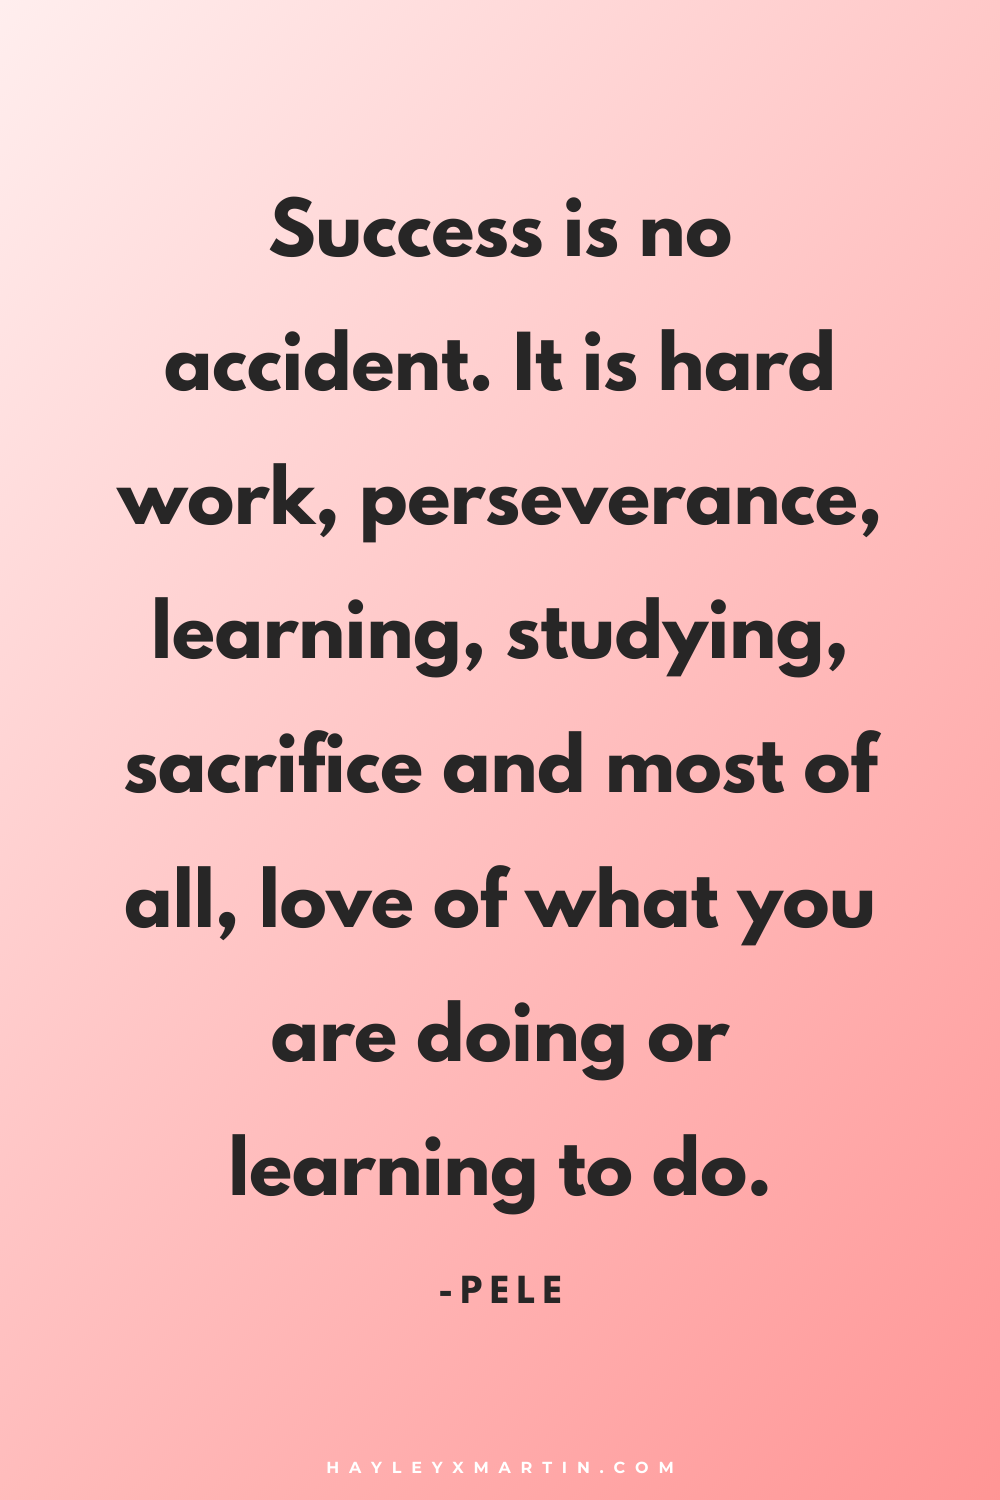 Success is no accident | hayleyxmartin.com